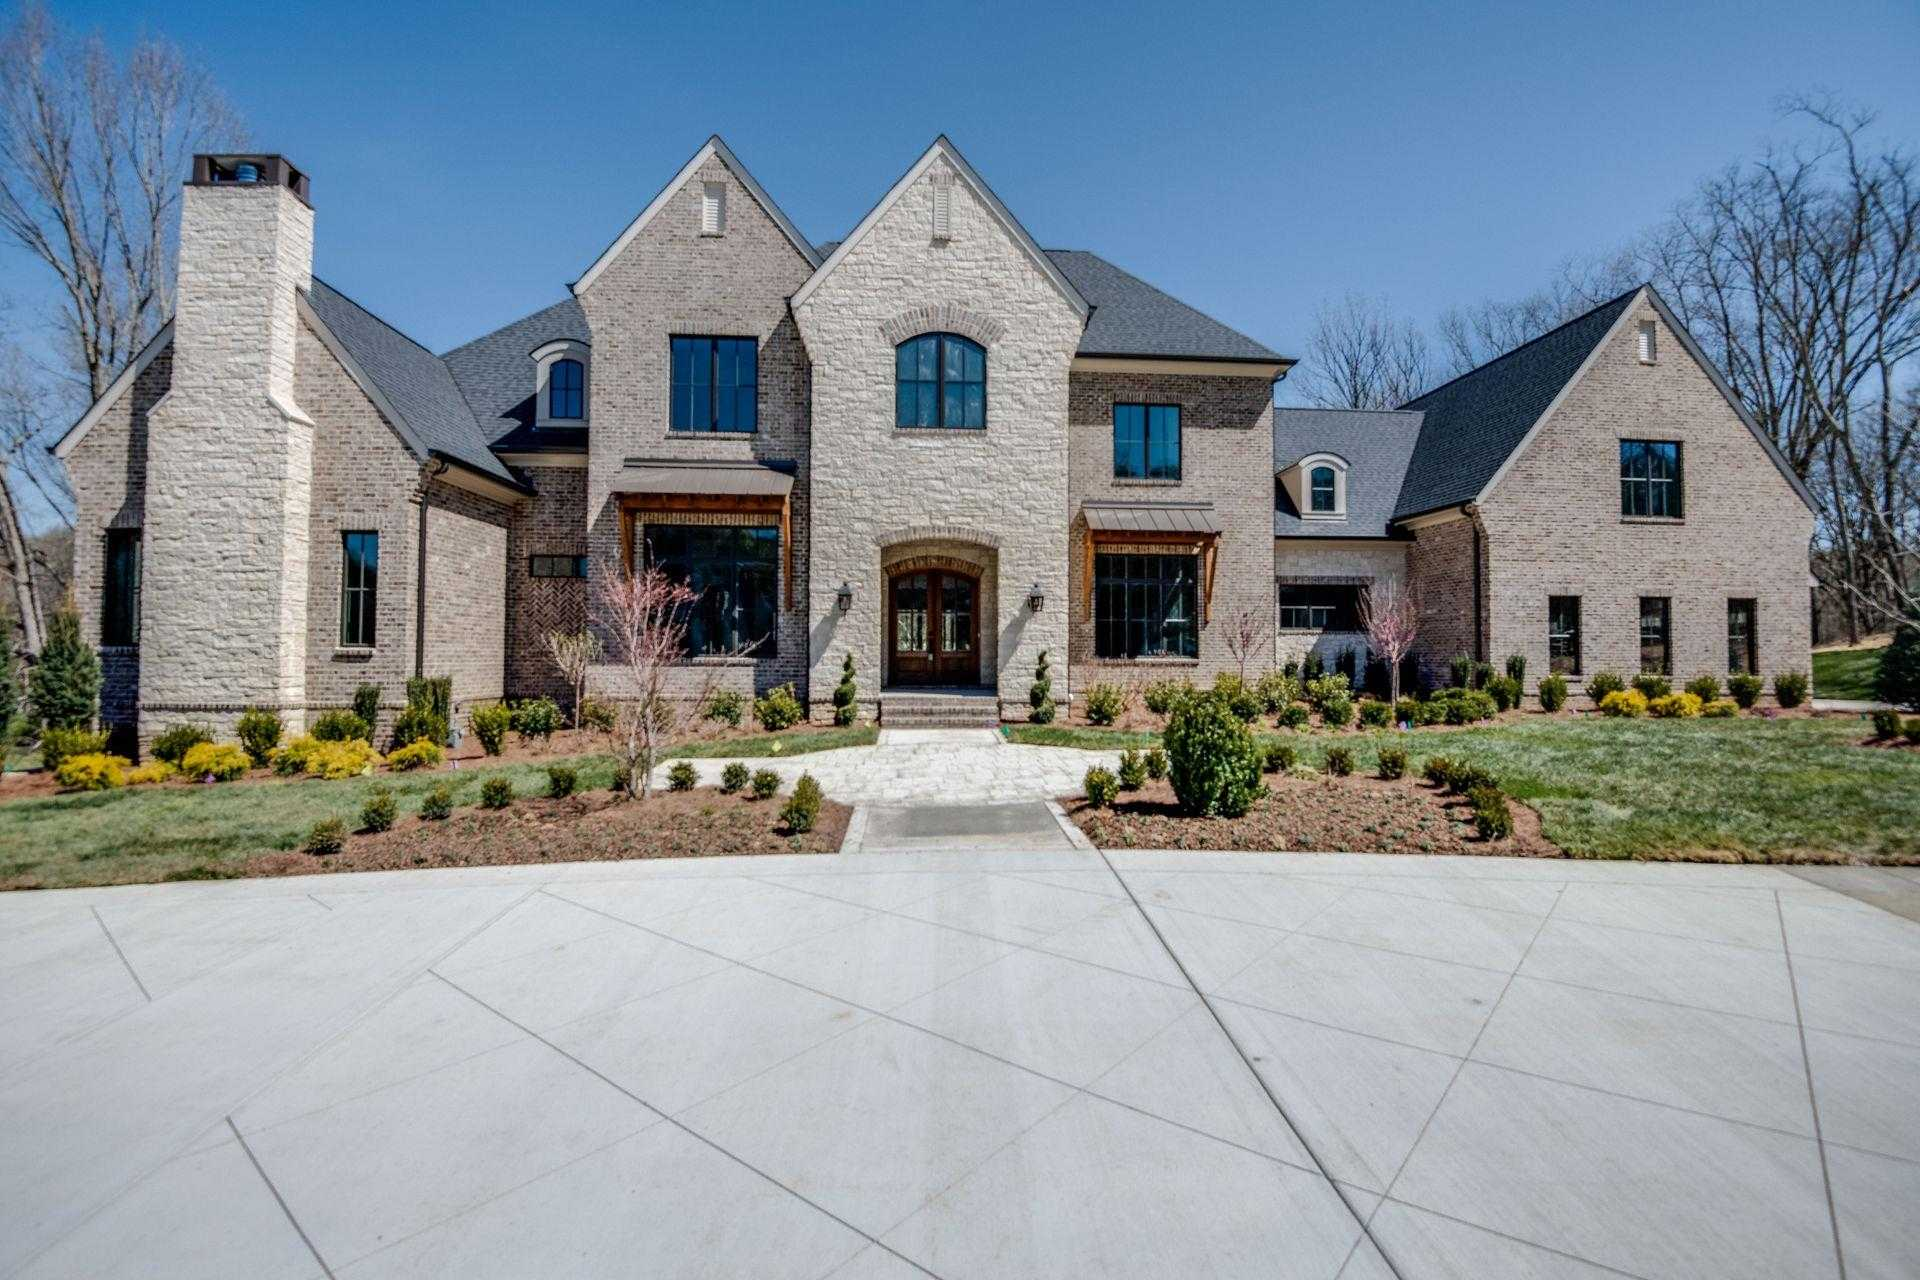 $3,399,900 - 5Br/7Ba -  for Sale in Cartwright Close, Brentwood